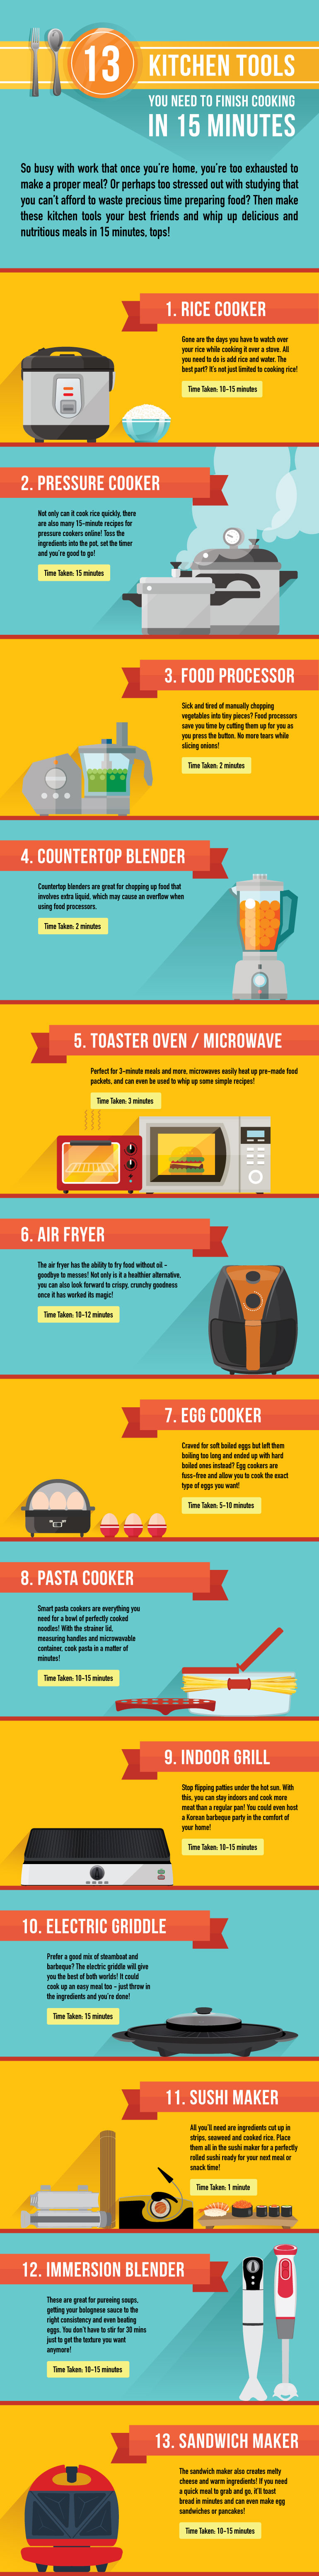 13 kitchen tools you need finish cooking 15 minutes